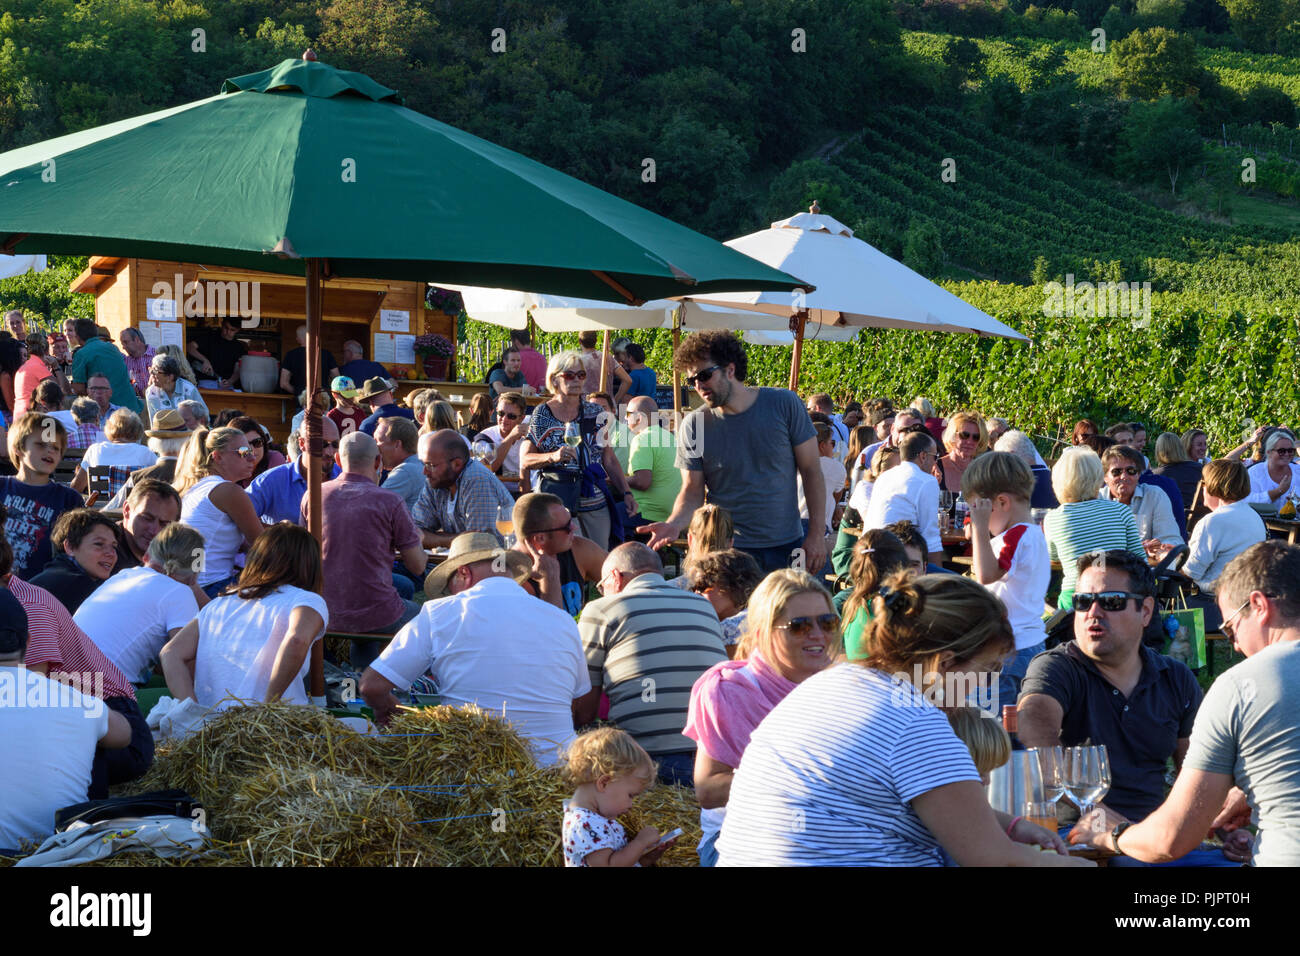 """Gumpoldskirchen: vineyard, bar at festival """"Genussmeile"""" along 1st Vienna water line hiking path, winegrowing enterprises with own bars, visitors, Wie Stock Photo"""